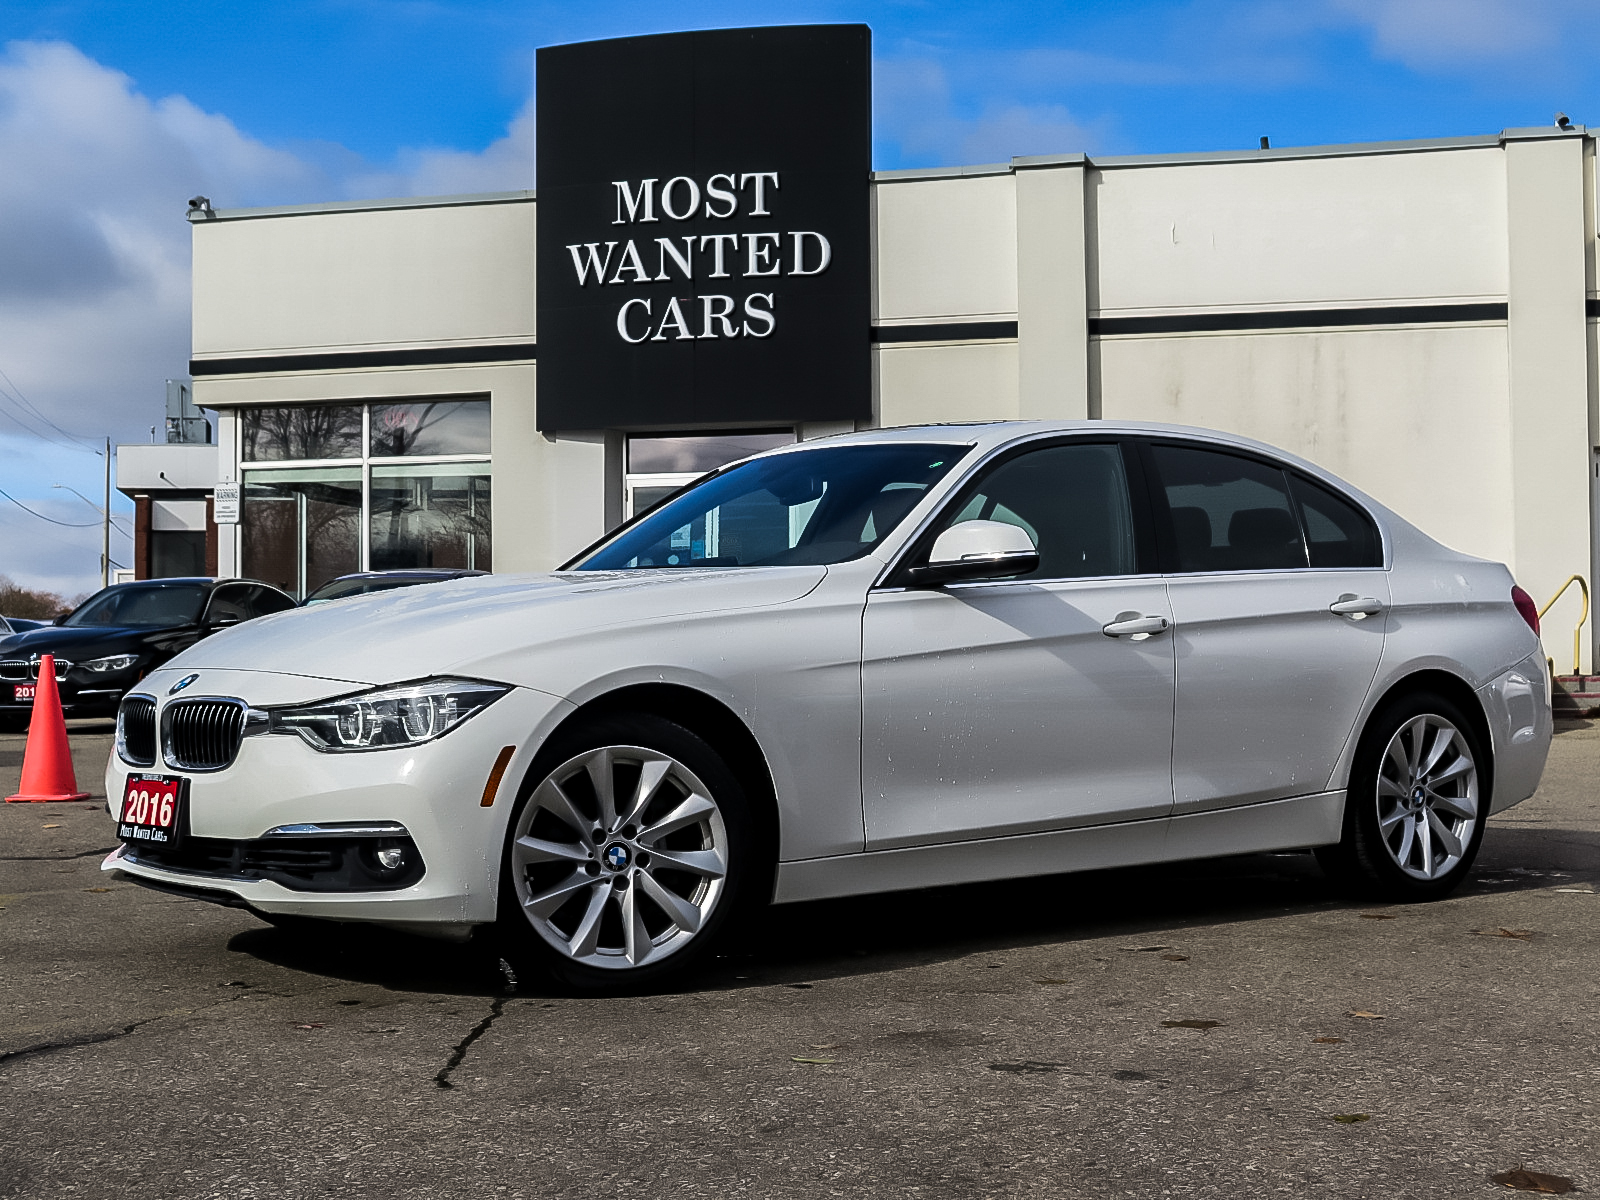 used 2016 BMW 328xi car, priced at $24,492